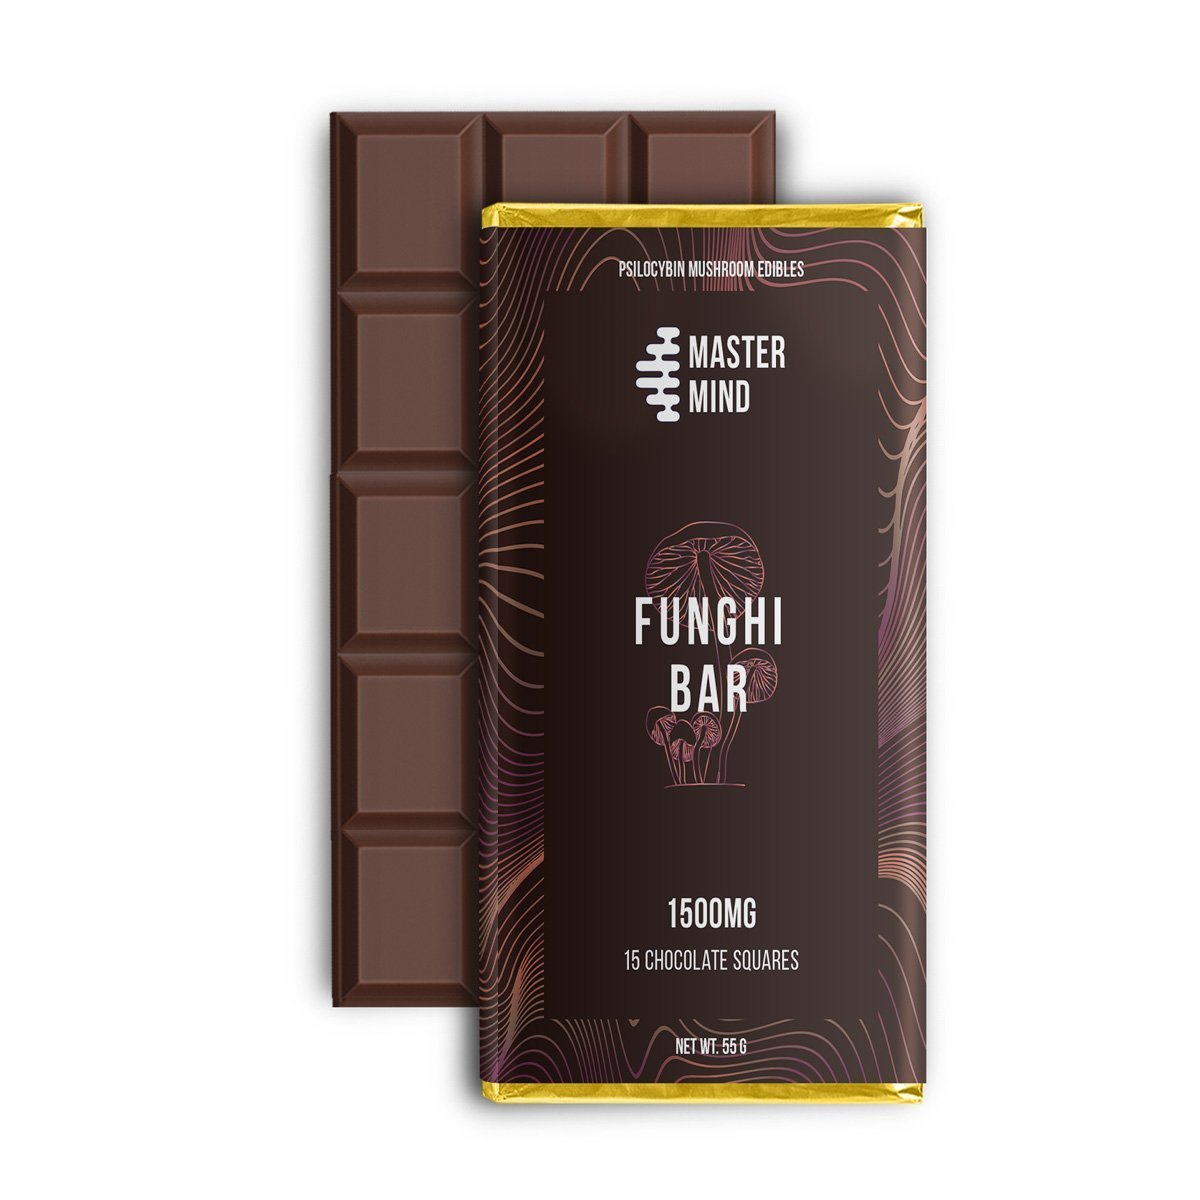 Master Mind - Funghi Bar 1500 Mg